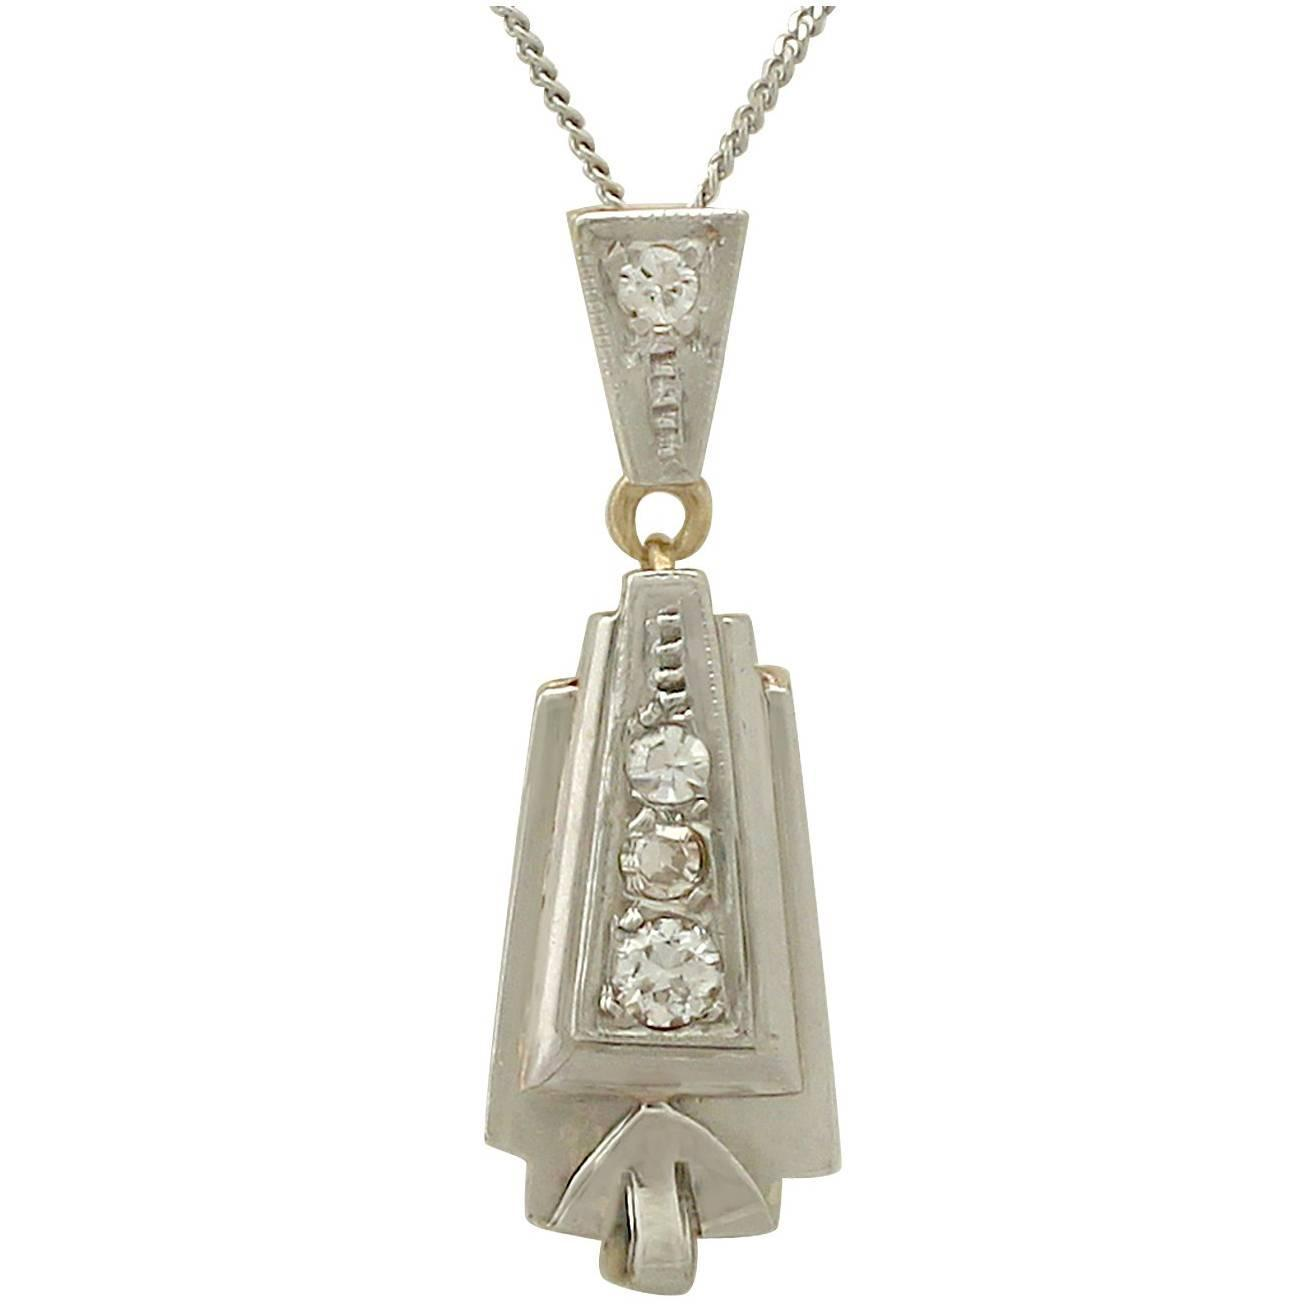 Art deco yellow white gold diamond pendant necklace for sale at 1stdibs mozeypictures Image collections